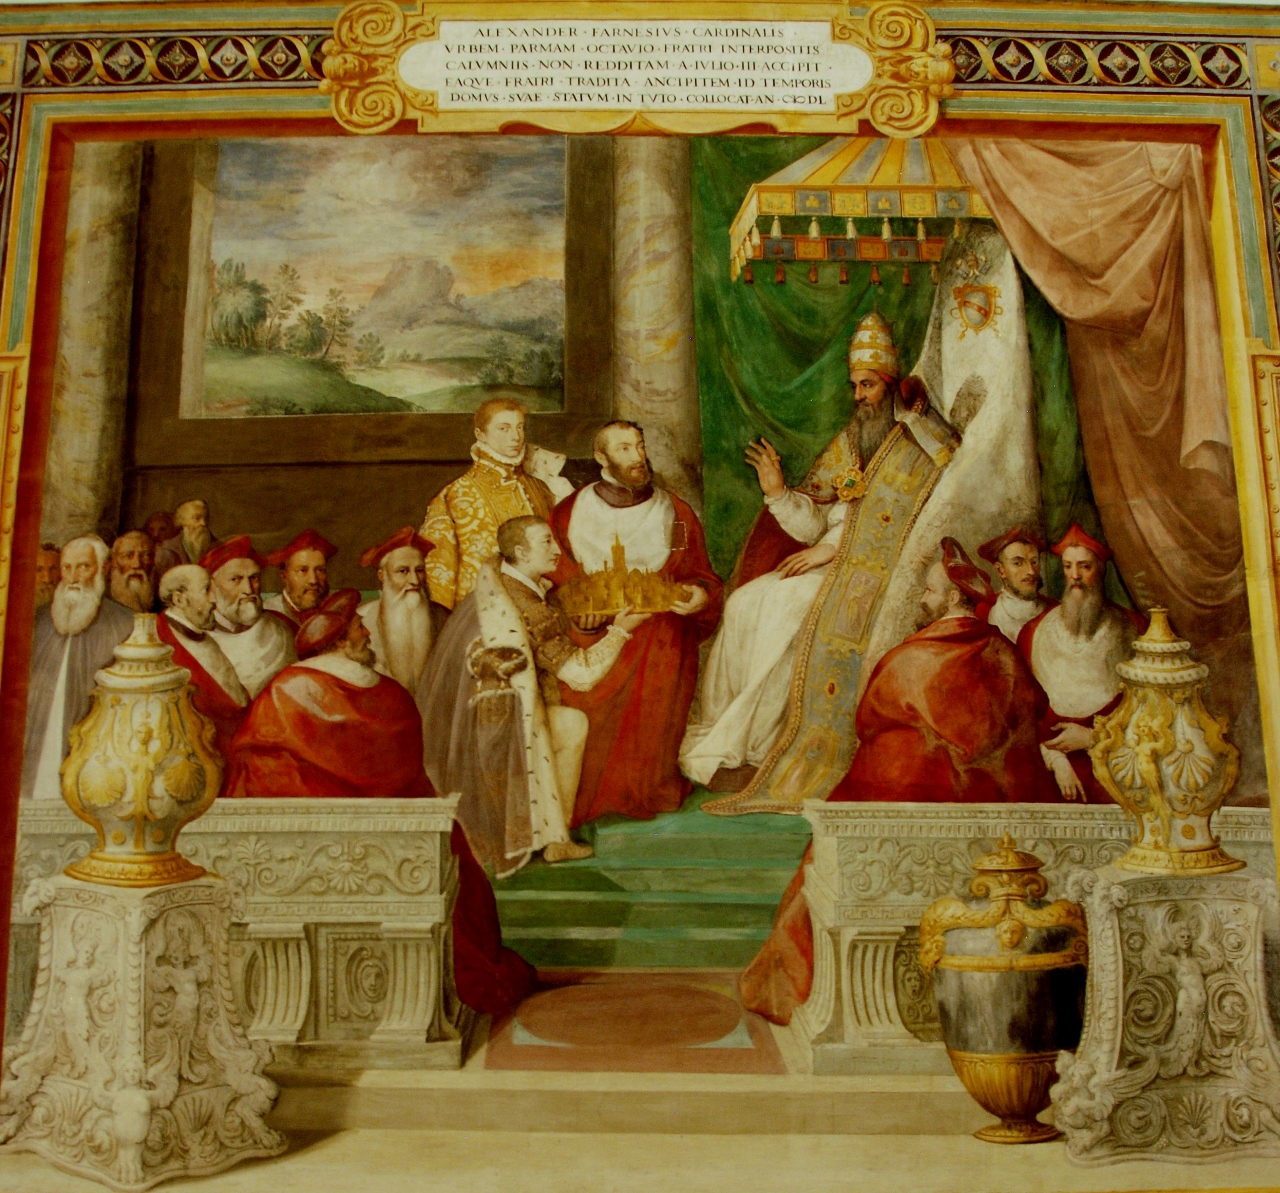 Room of Farnese Deeds.  Julius III returns the city of Parma to the Farnese